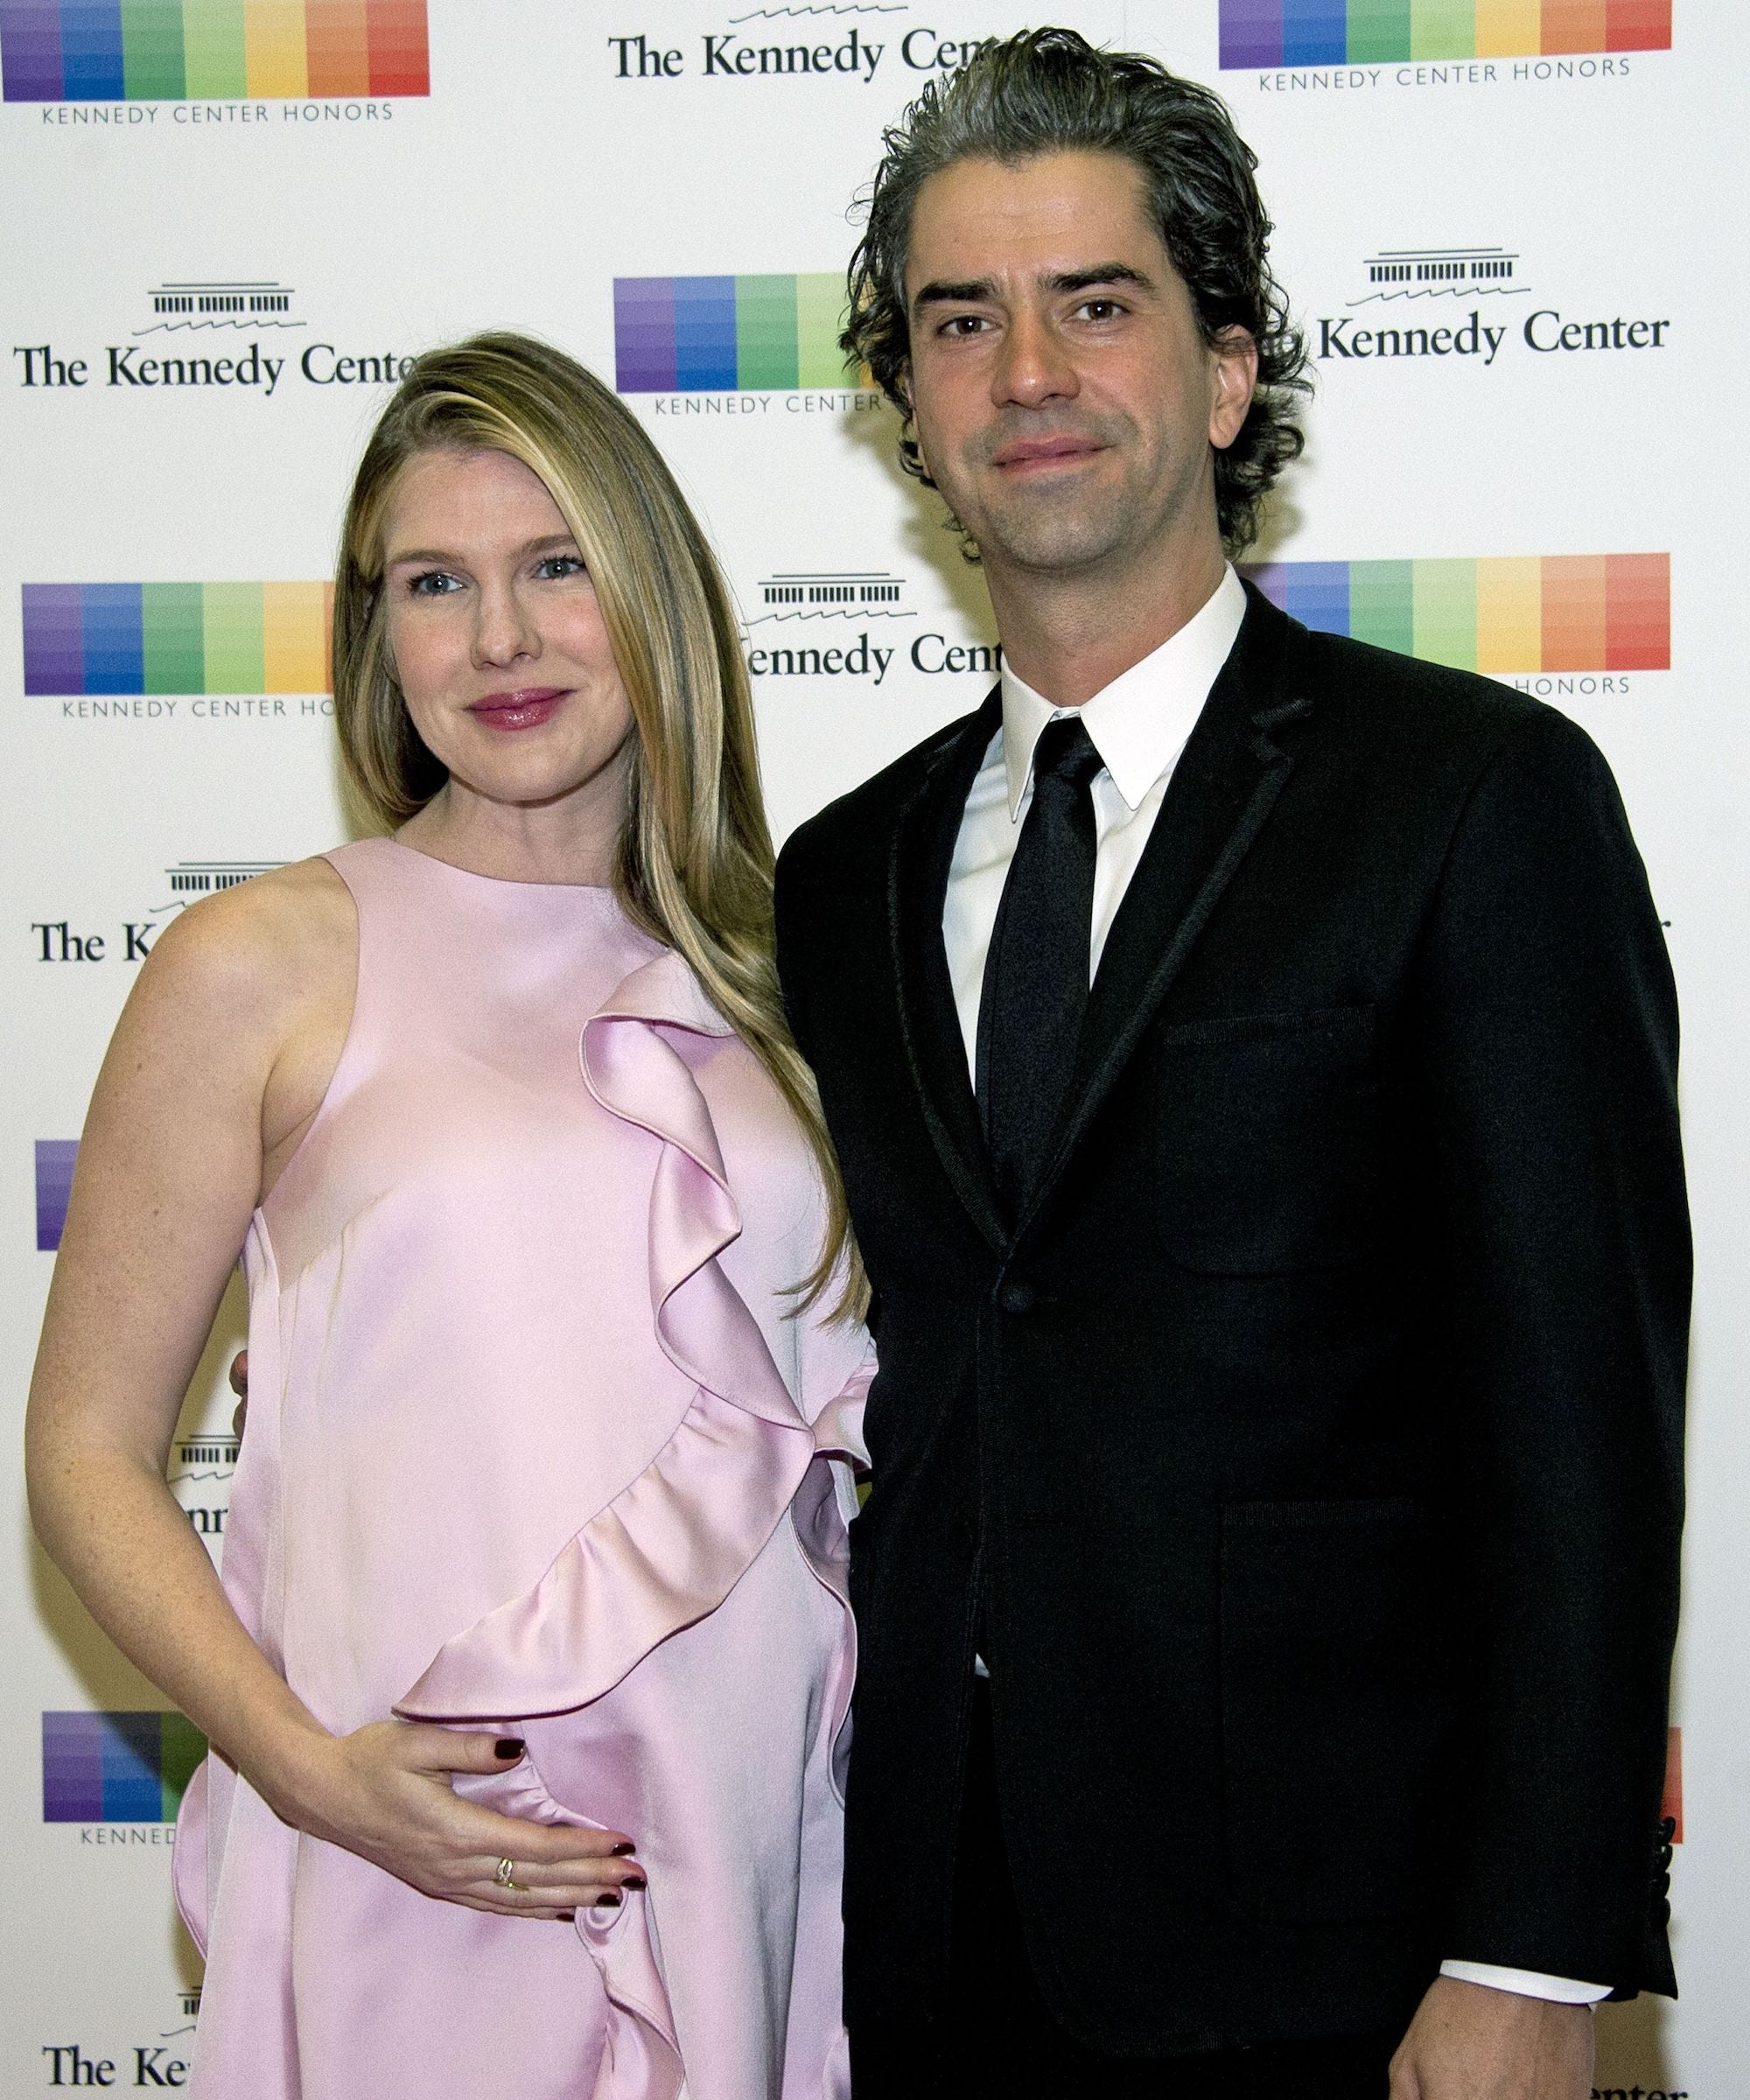 AHS Star Lily Rabe Expecting Baby Hamish Linklater